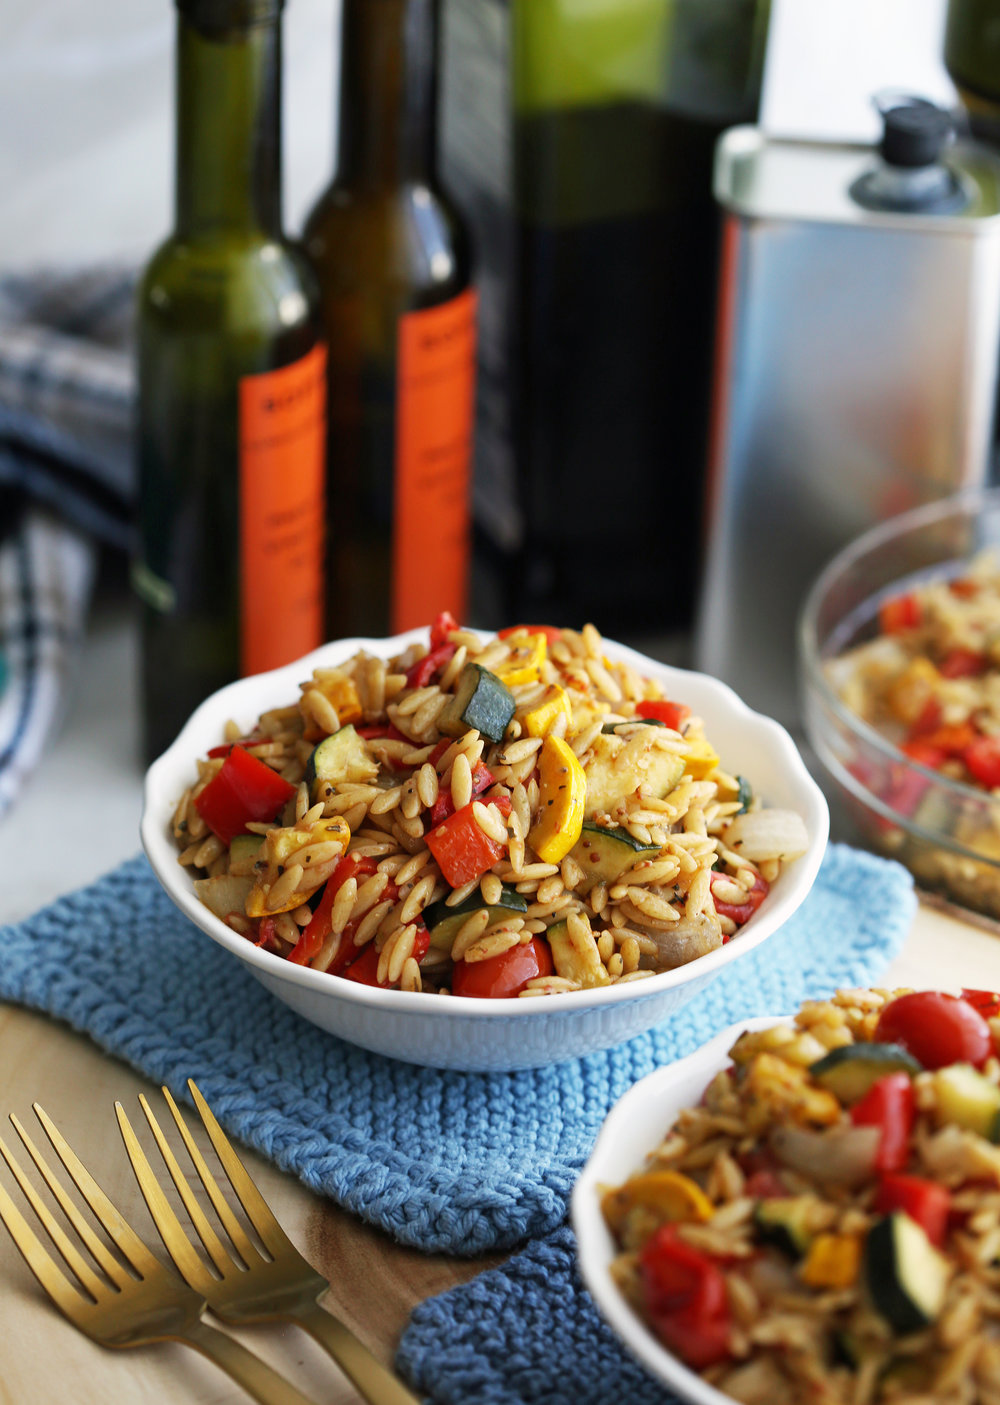 Roasted summer vegetable and orzo pasta salad with Dijon-balsamic vinaigrette in a small white bowl.